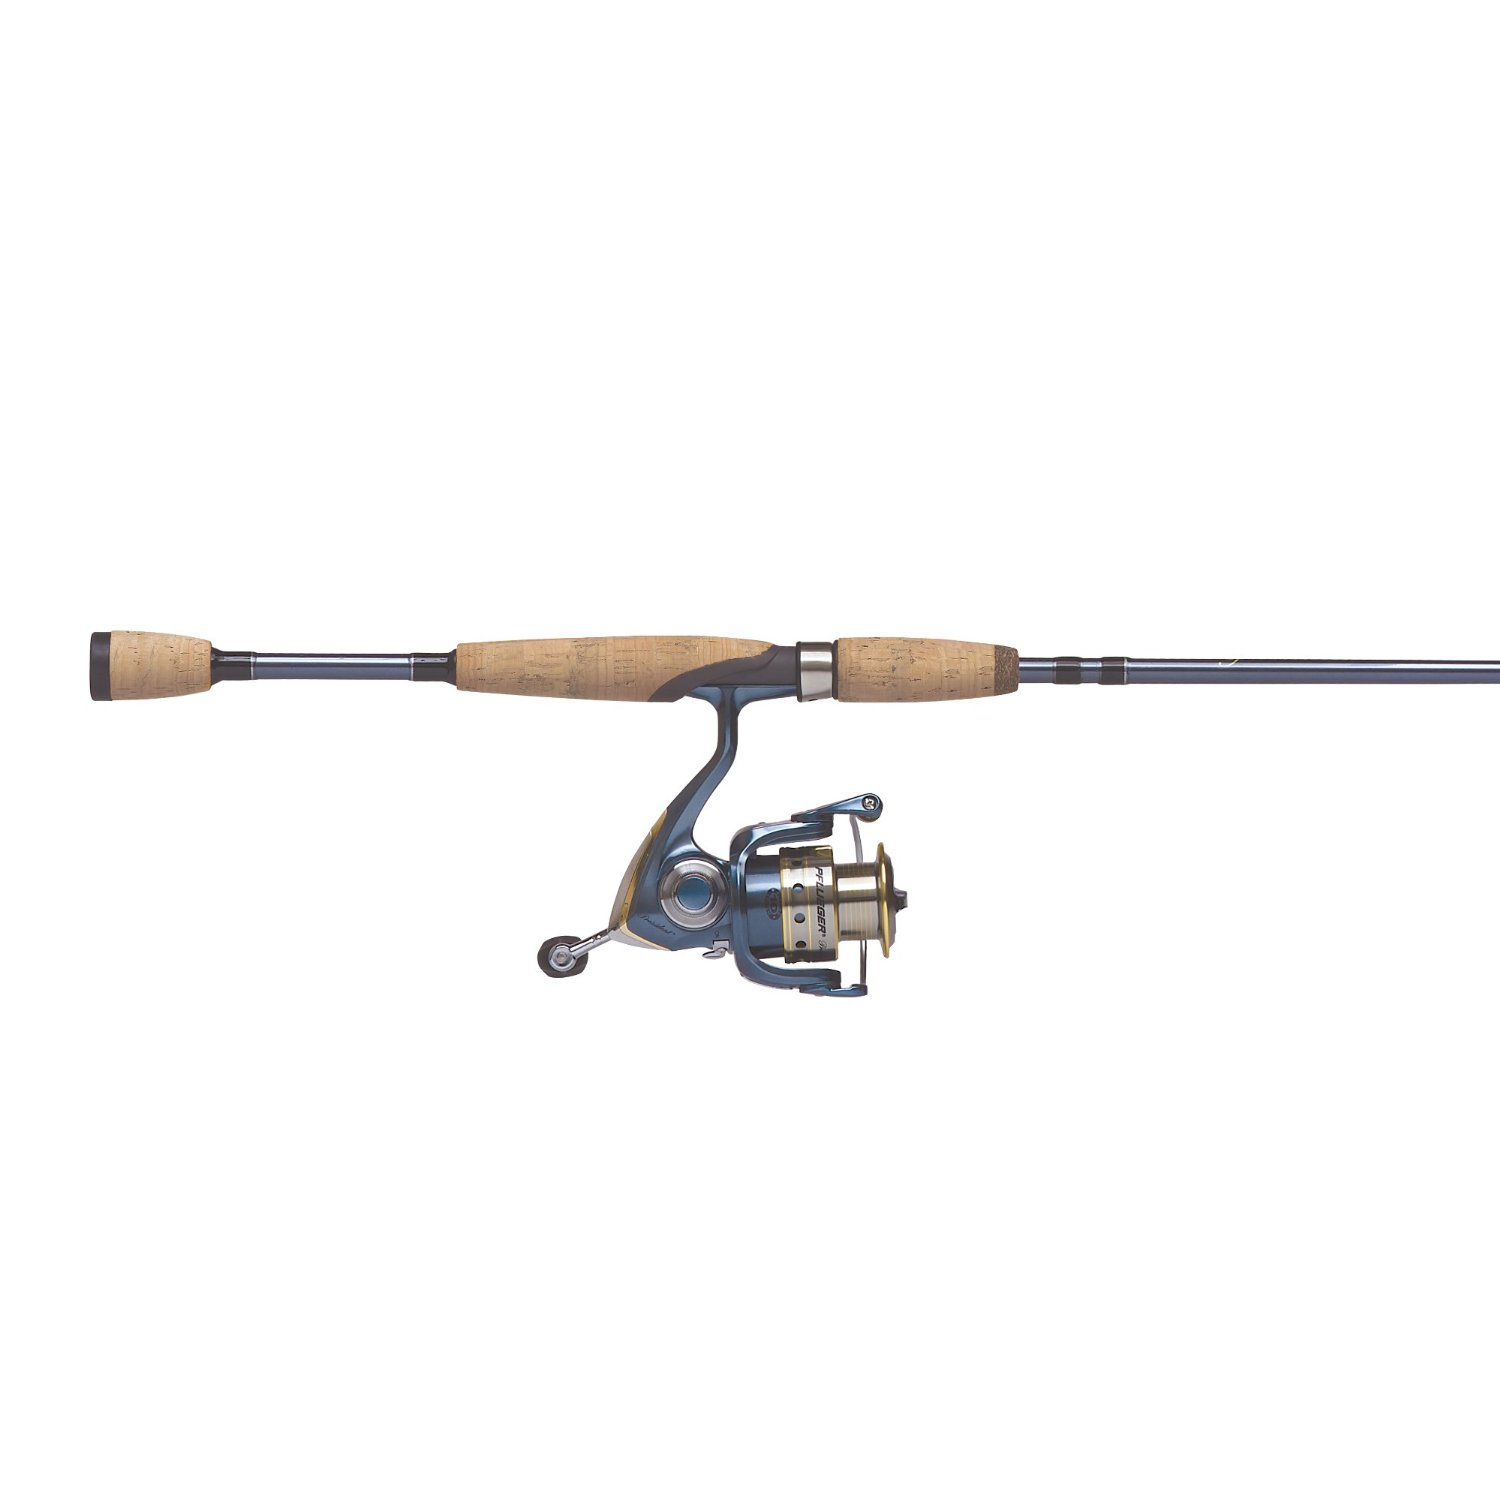 Pflueger president spinning reel and rod combo for Fishing combo sale